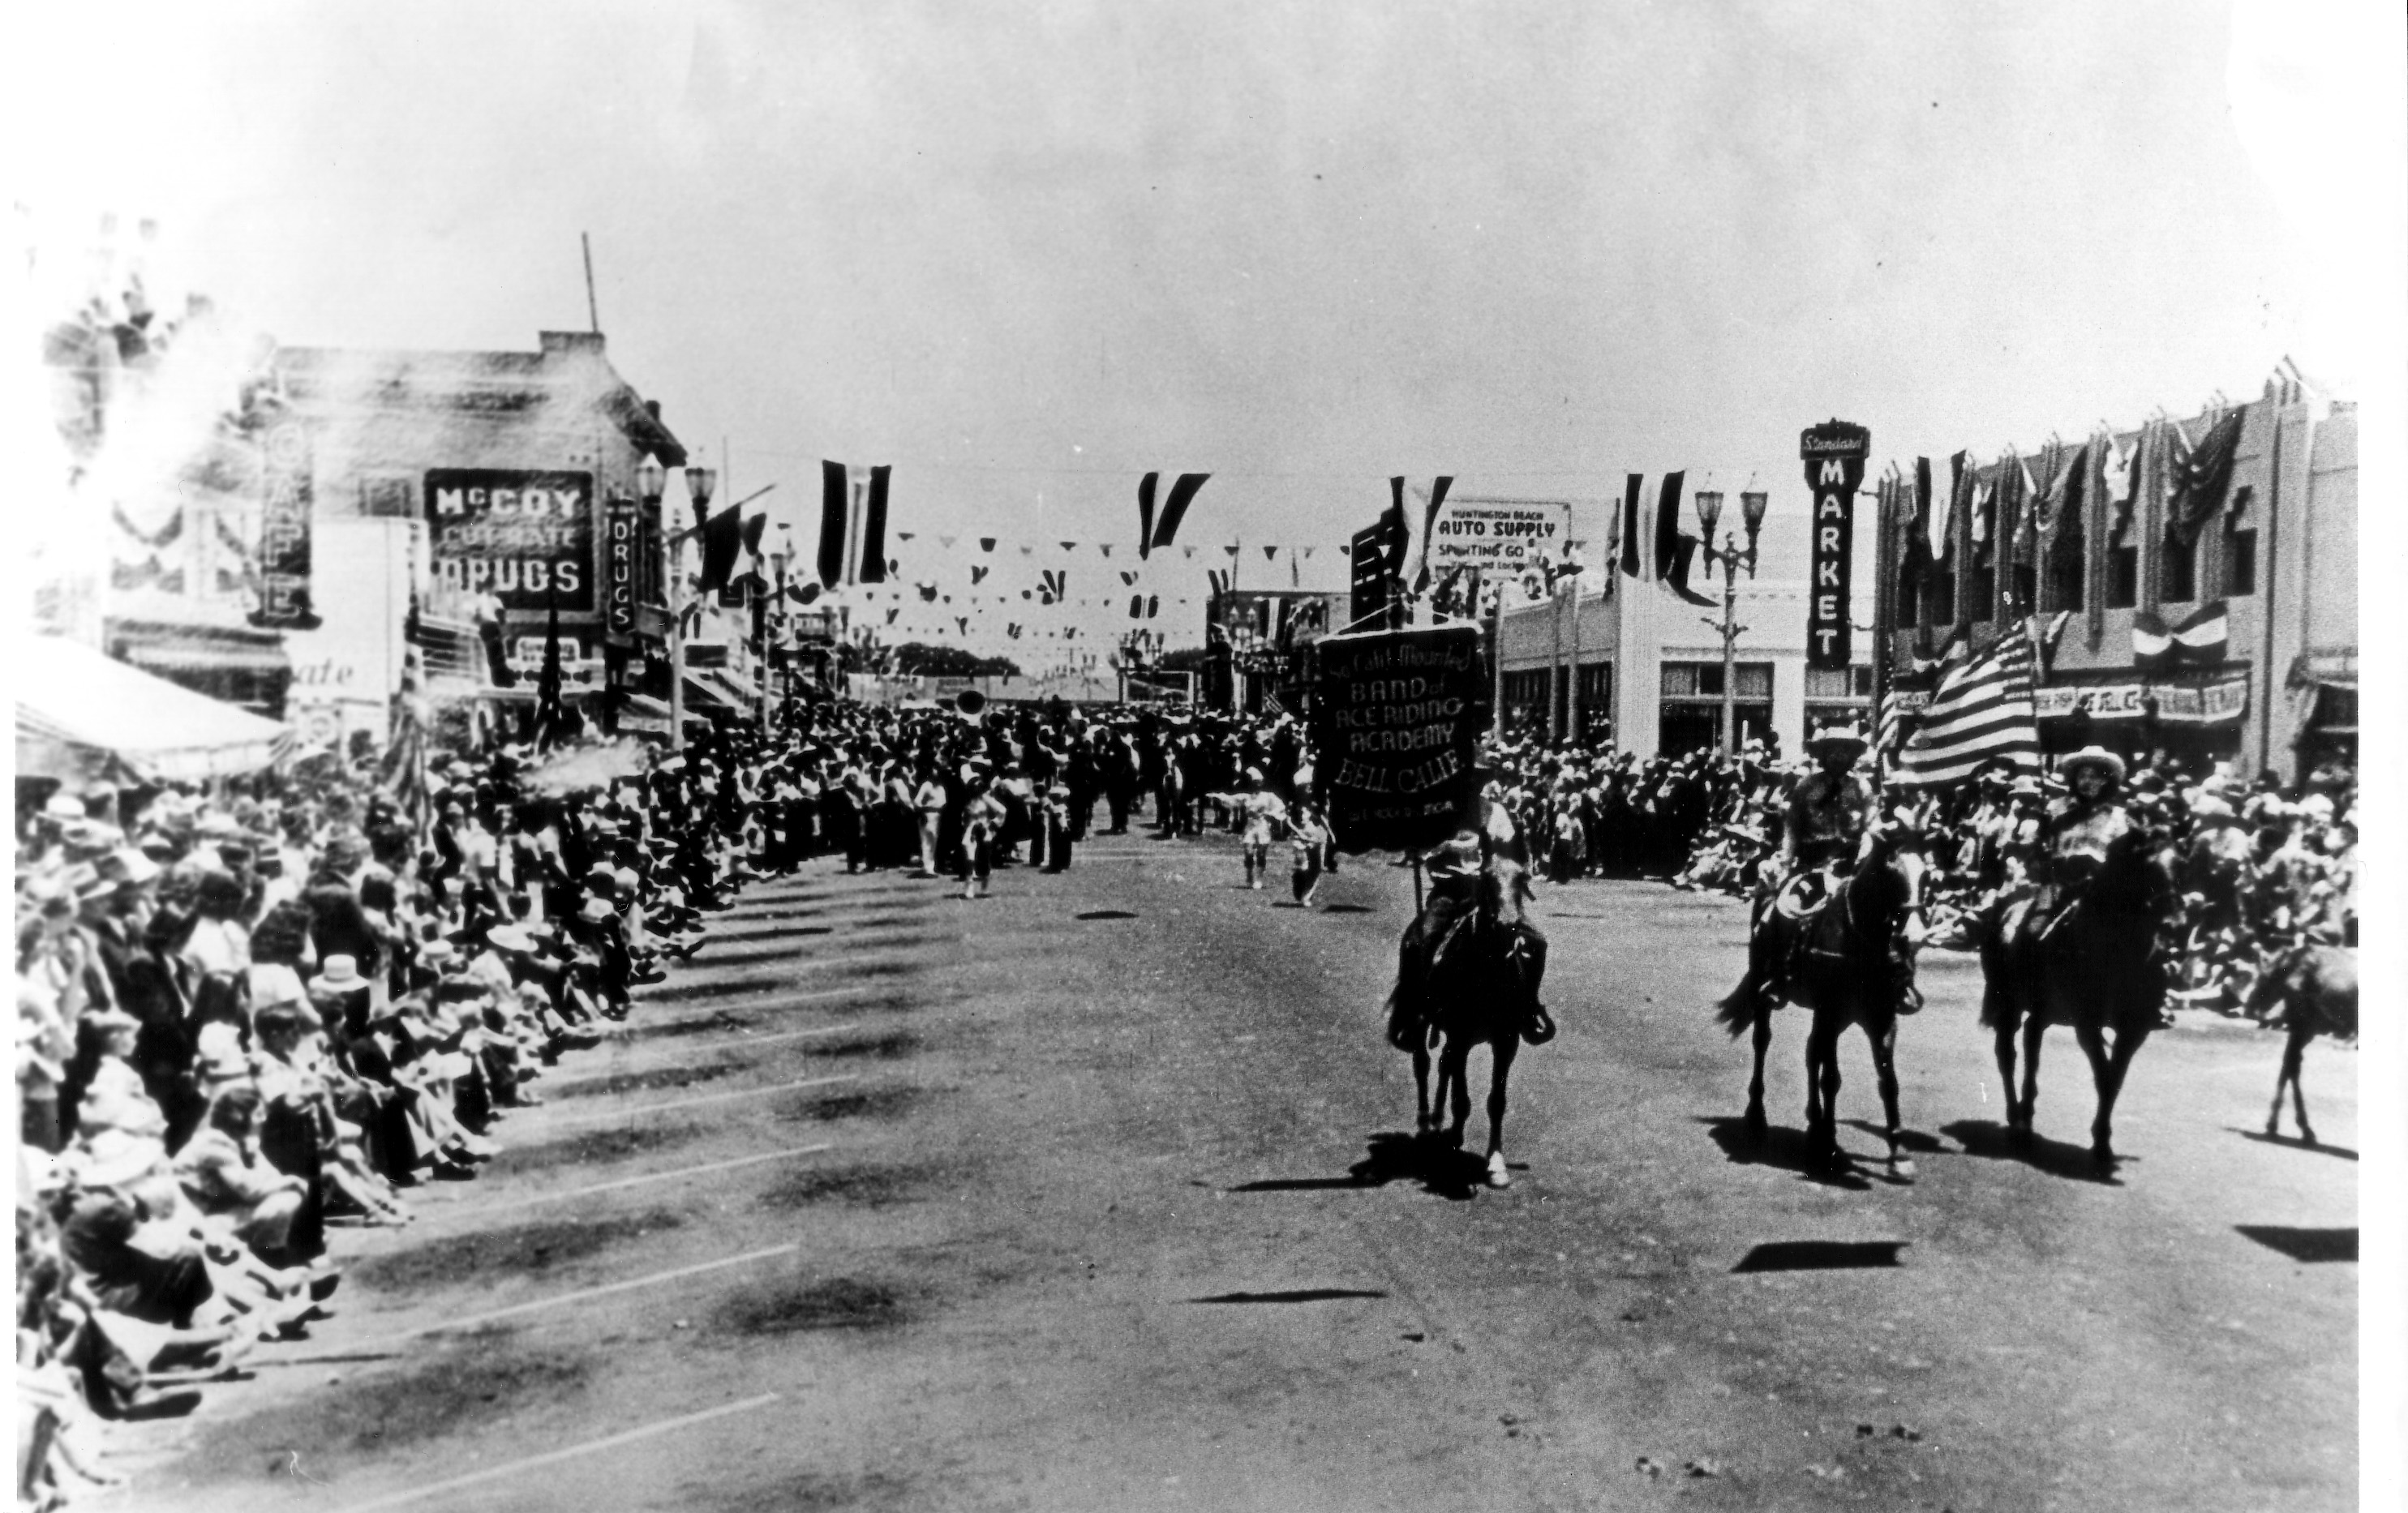 Huntington Beach 4th of July Parade circa 1935